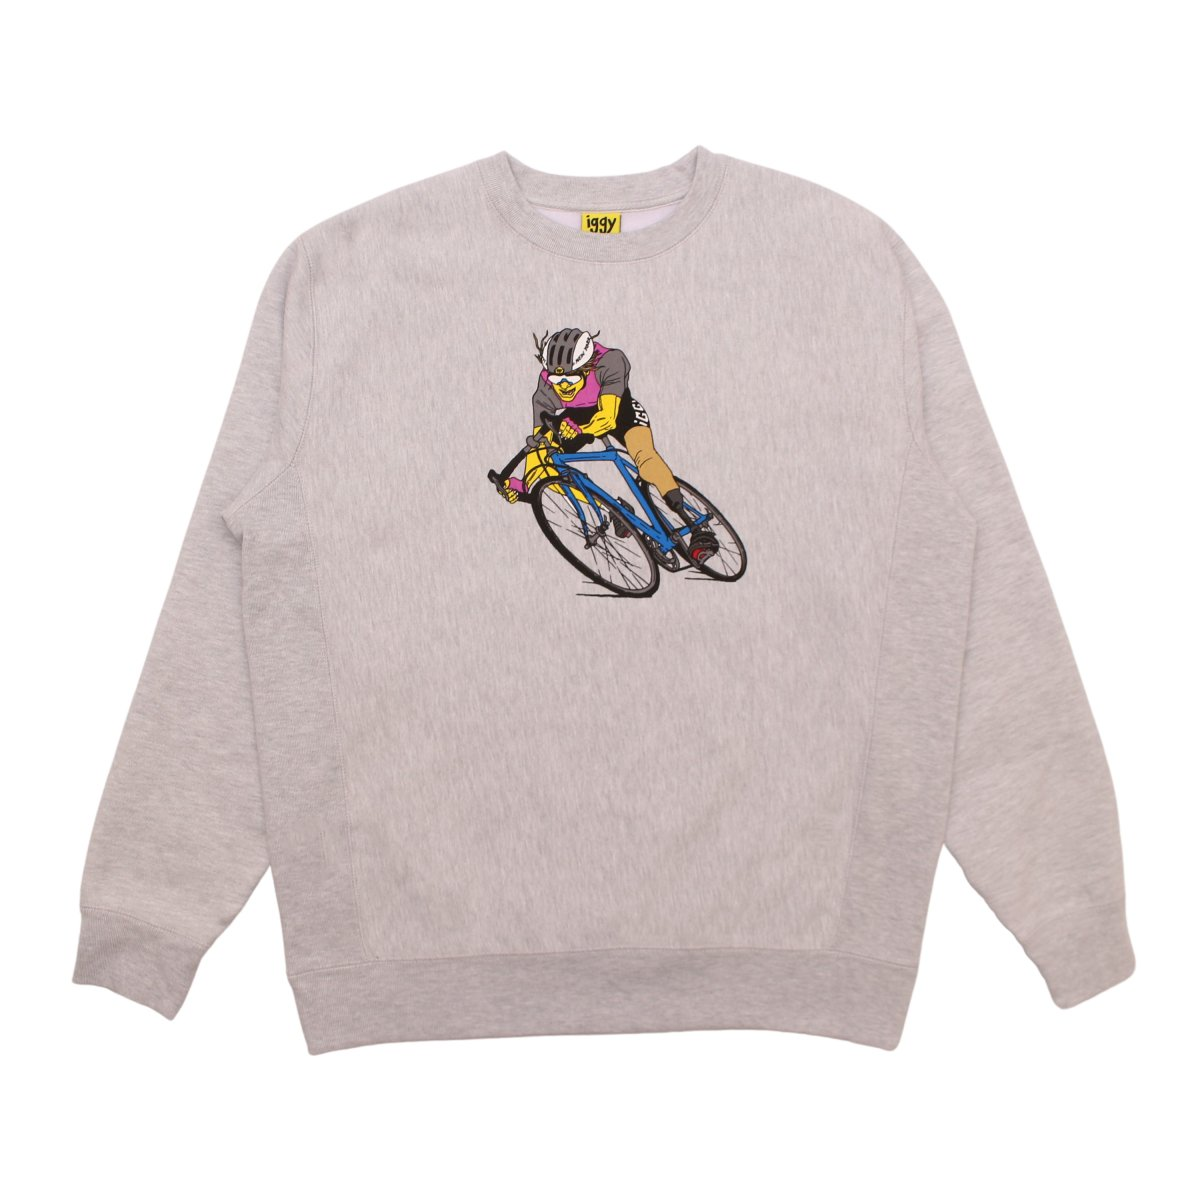 Cycling Crewneck Sweatshirt